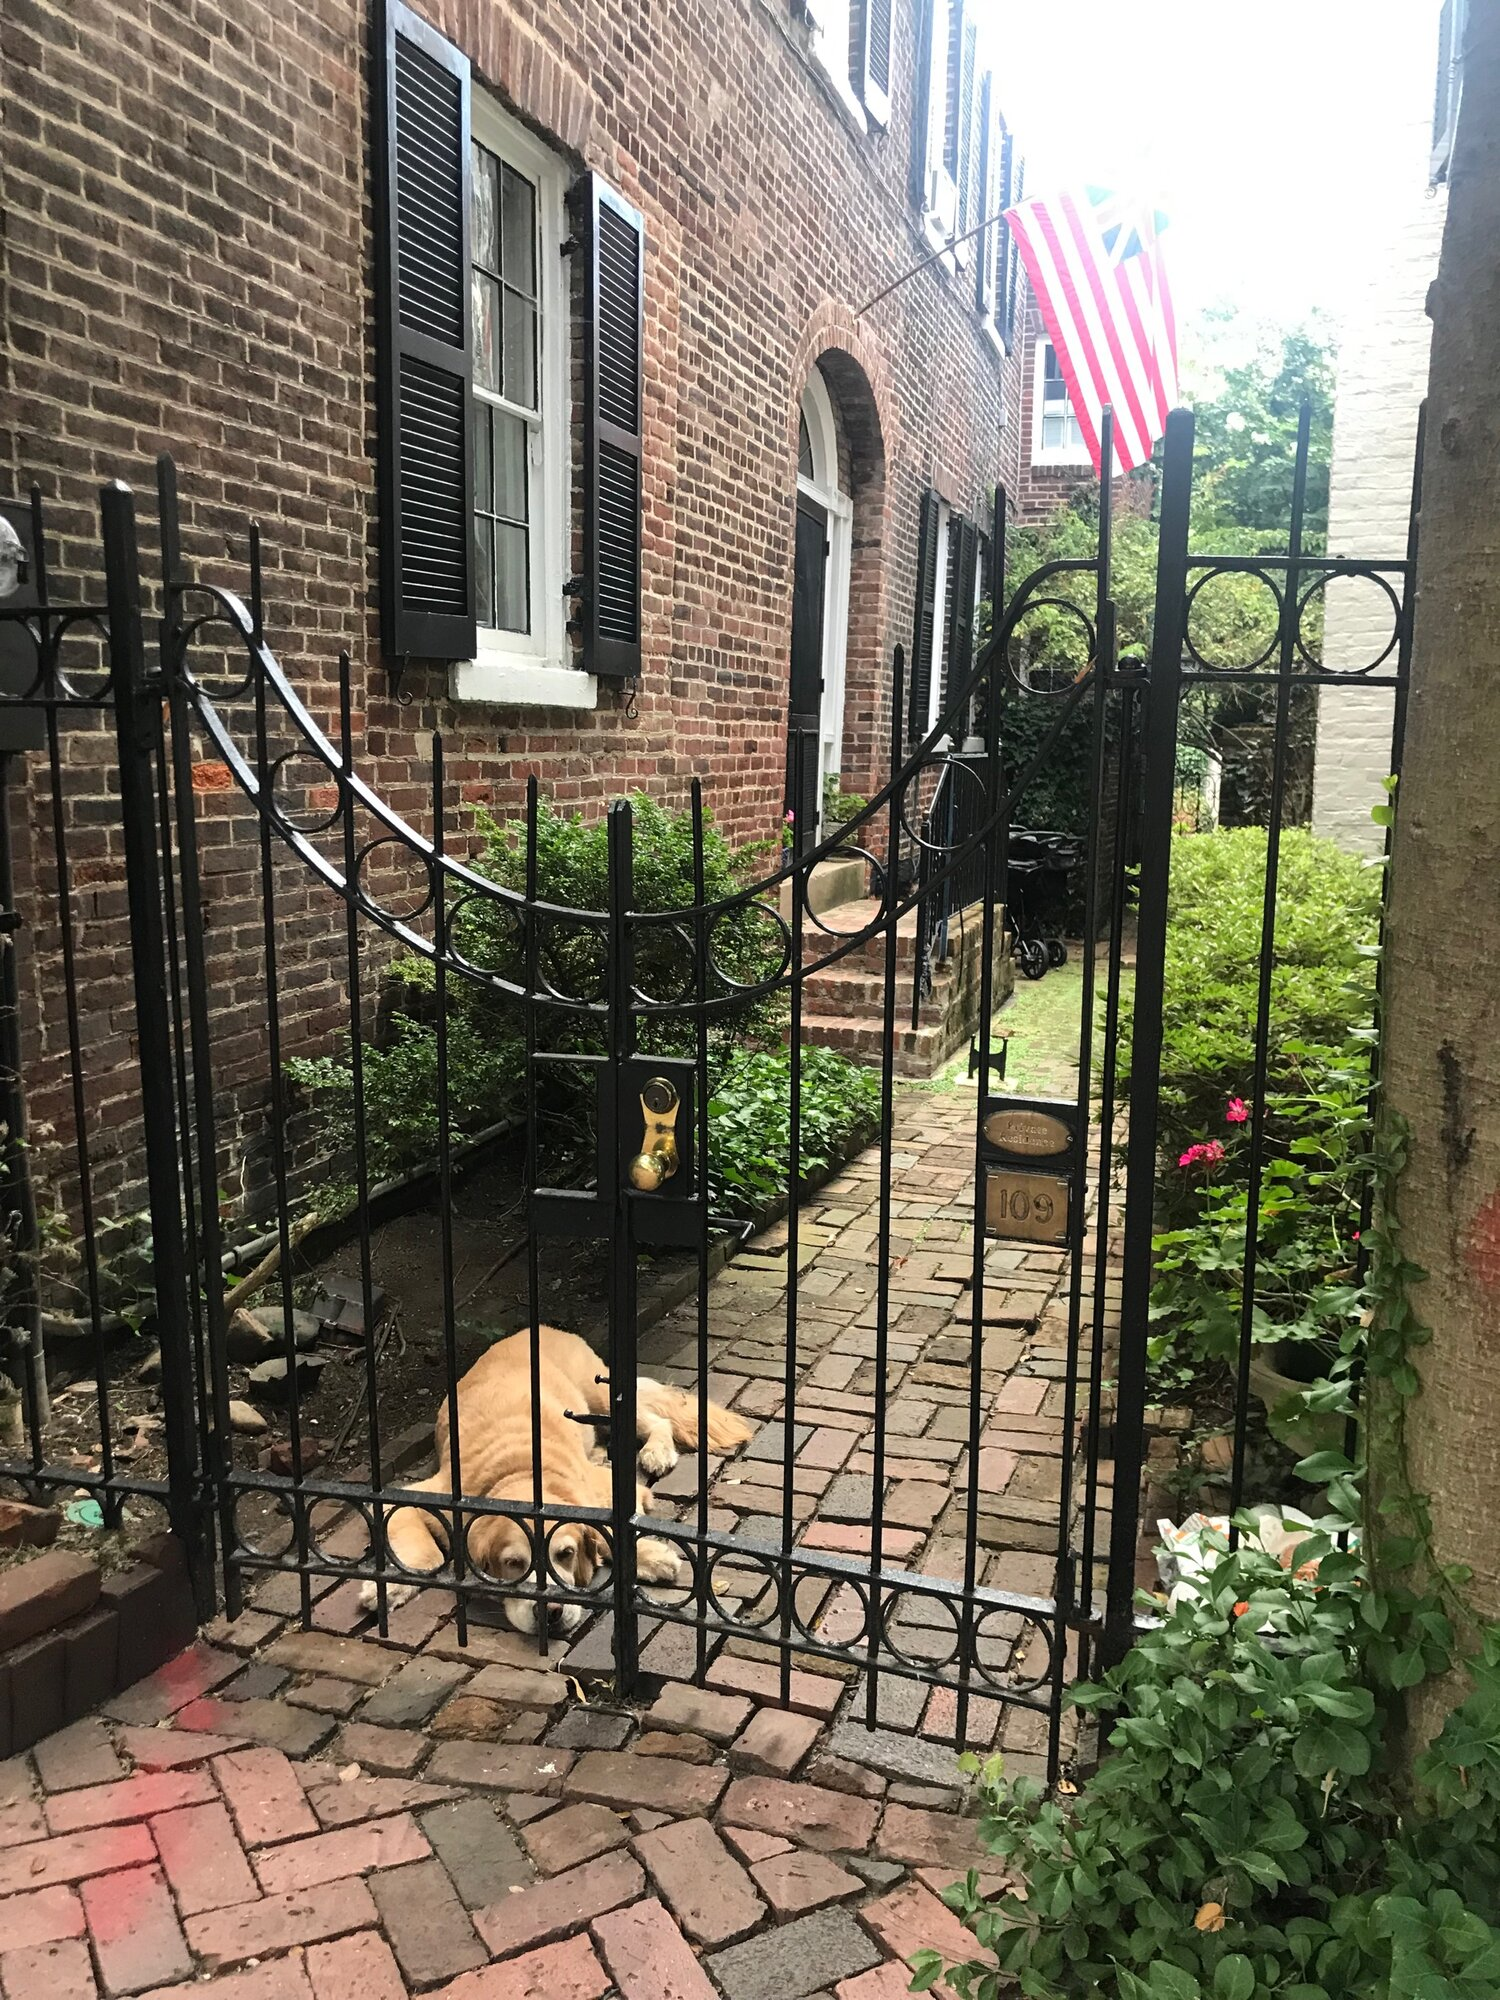 I found this sweet pupper hanging out in Old Town Alexandria near the festival while walking between events one day. <3